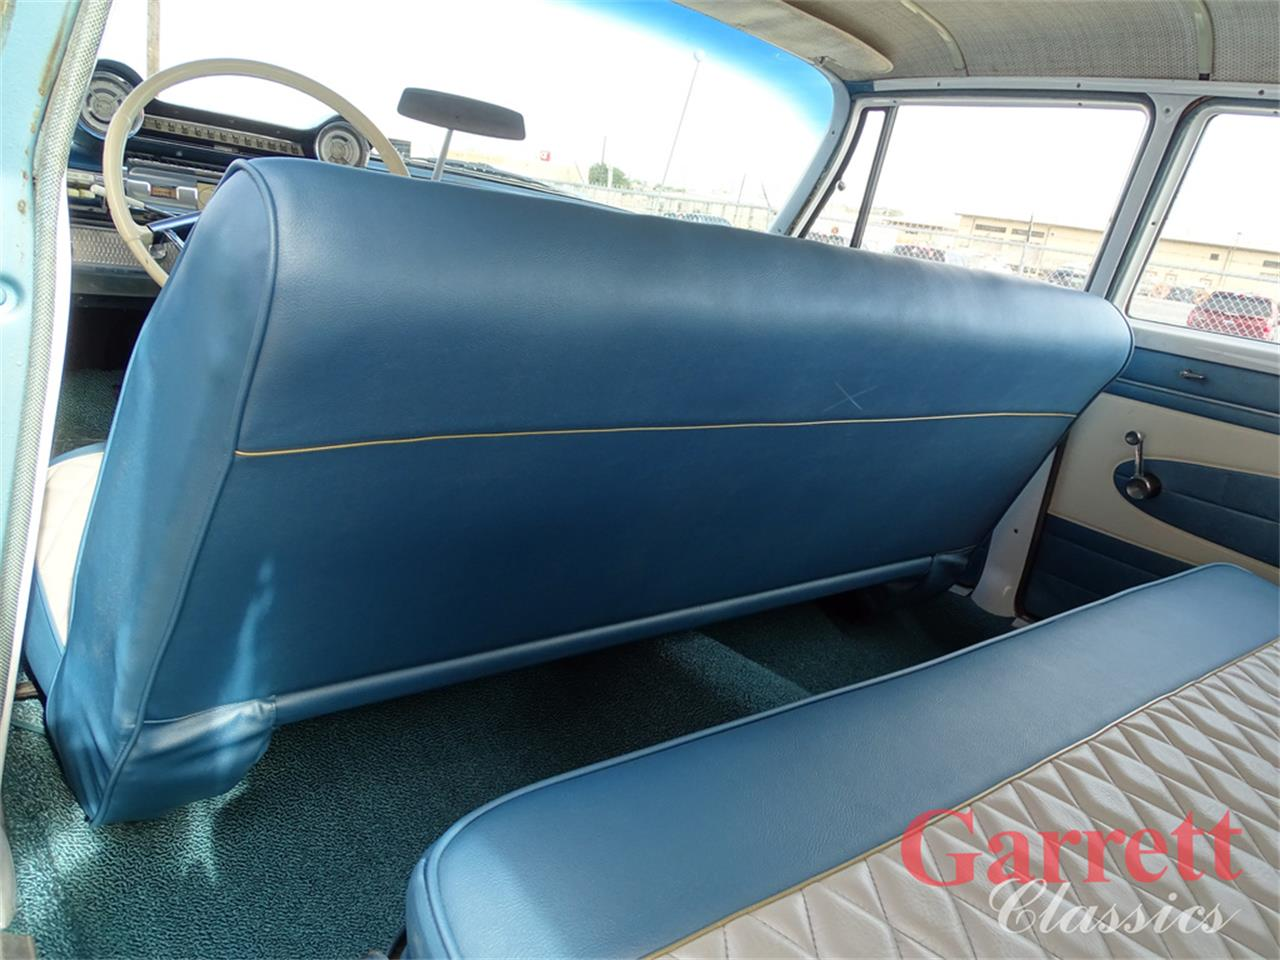 1961 Plymouth Belvedere for sale in Lewisville, TX – photo 27